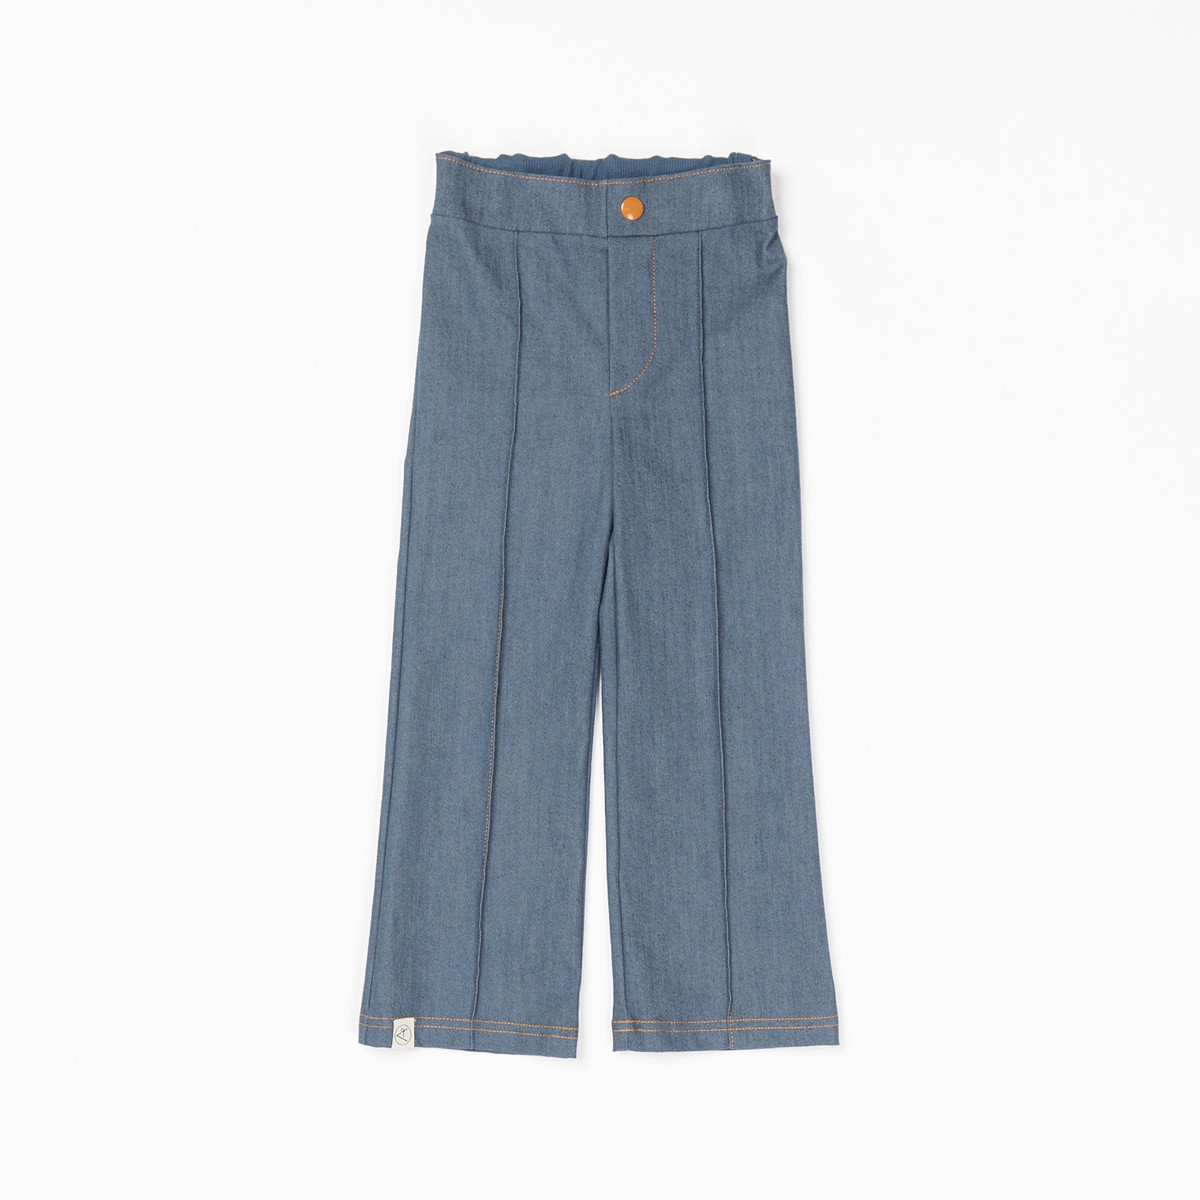 Hecco dark denim